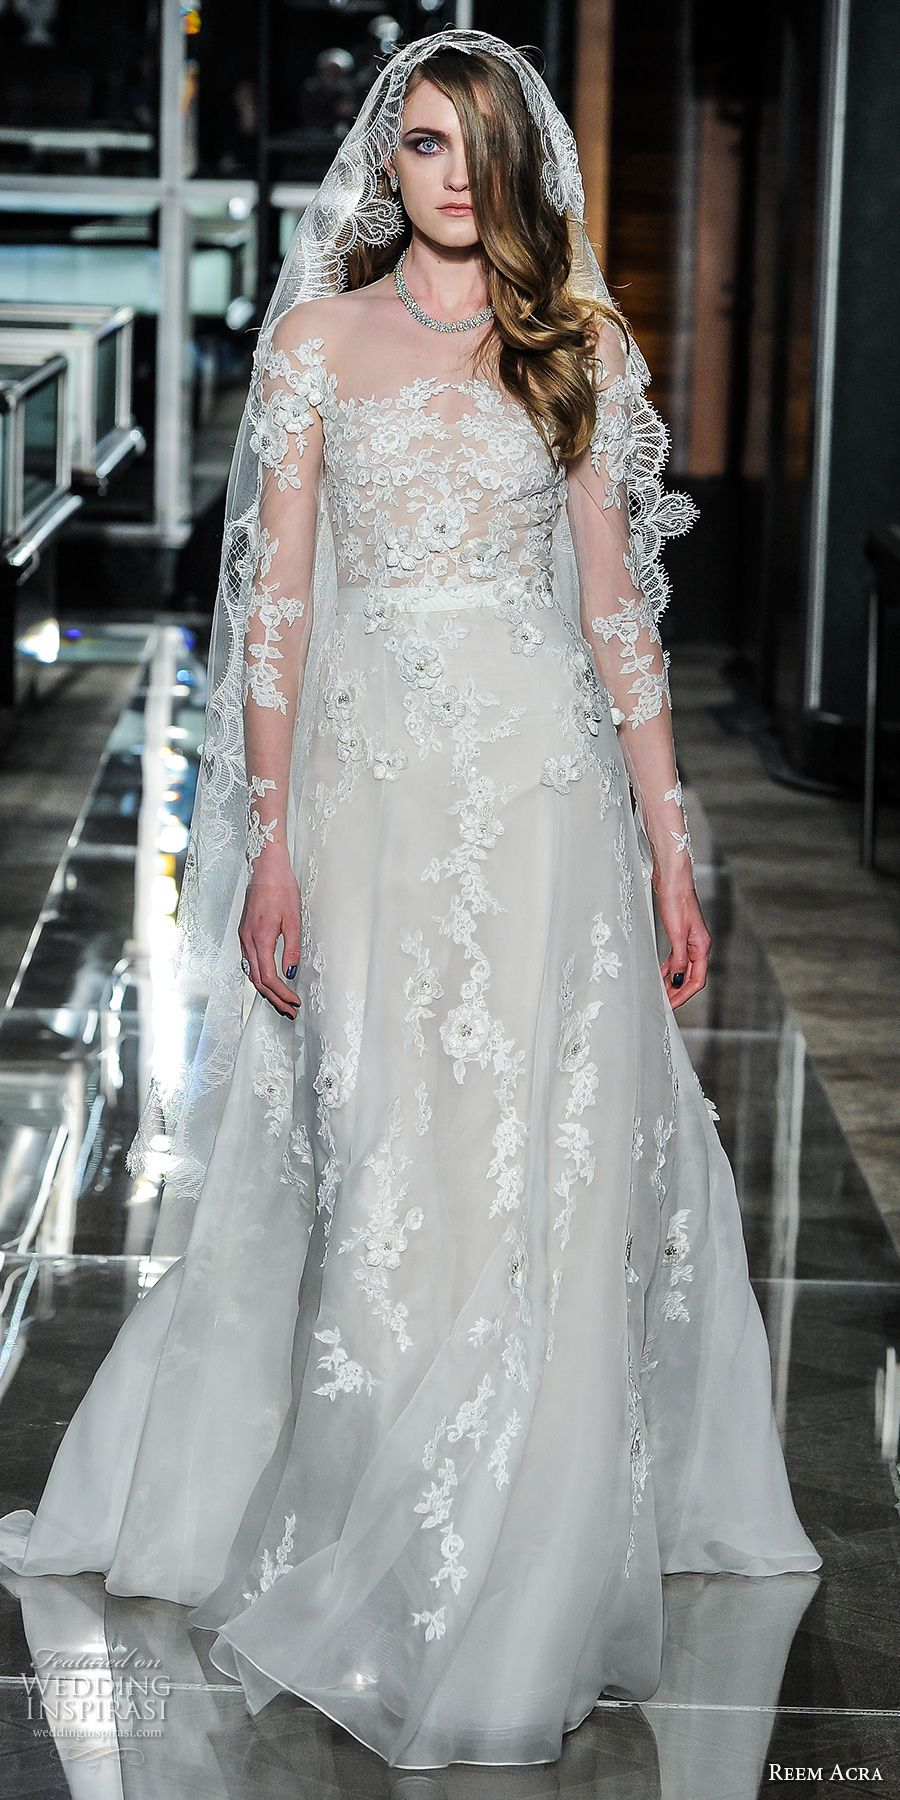 Reem acra spring wedding dresses u new york bridal fashion week